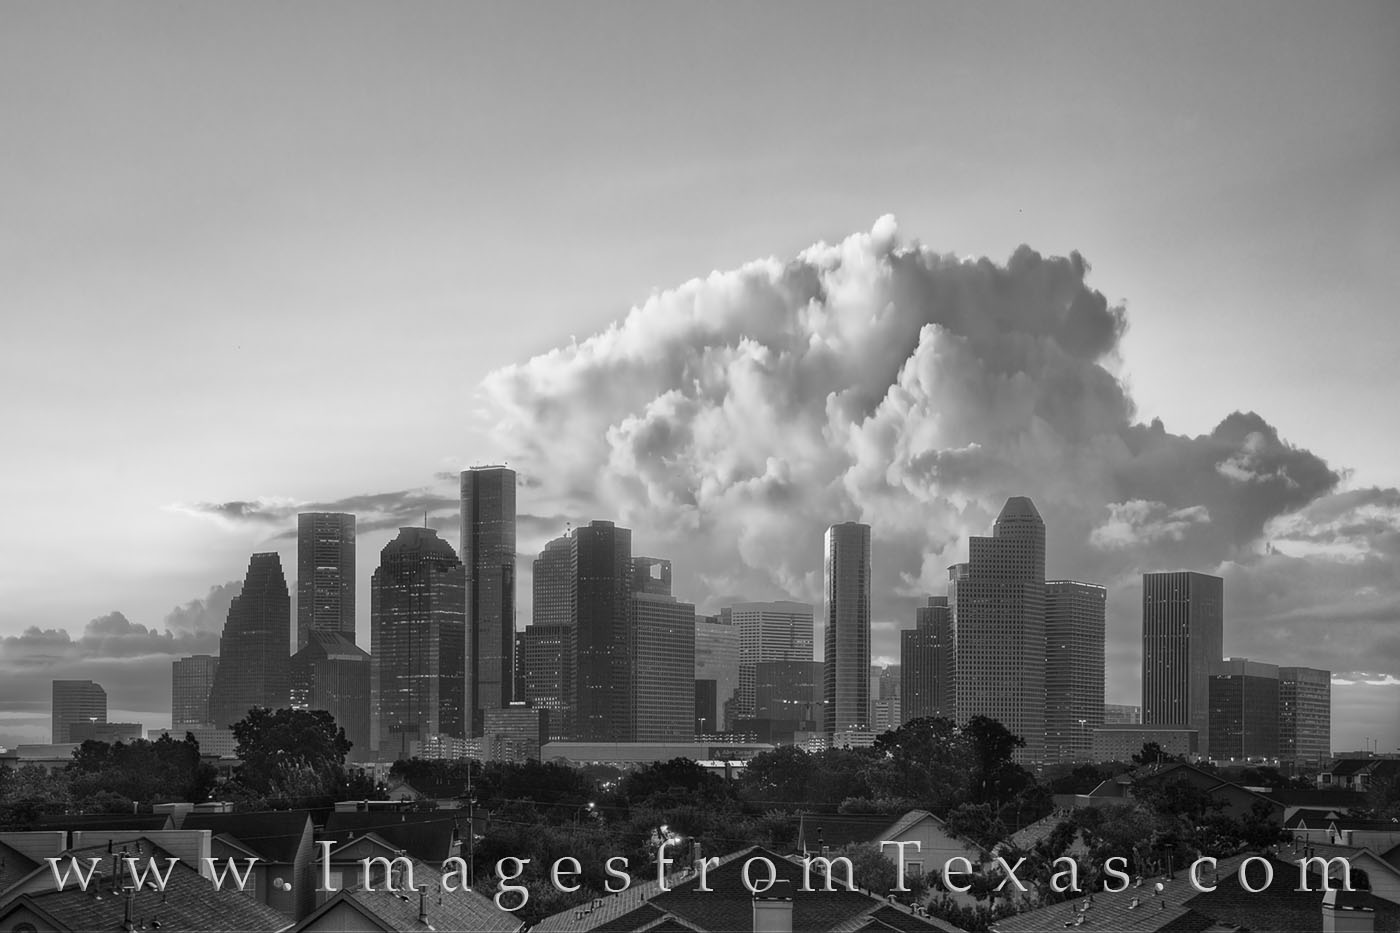 skyline of houston, houston skyline photos, downtown houston, houston texas, storm clouds over city, texas storms, thunderhead, houston skyscrapers, texas cities, storm clouds, photo